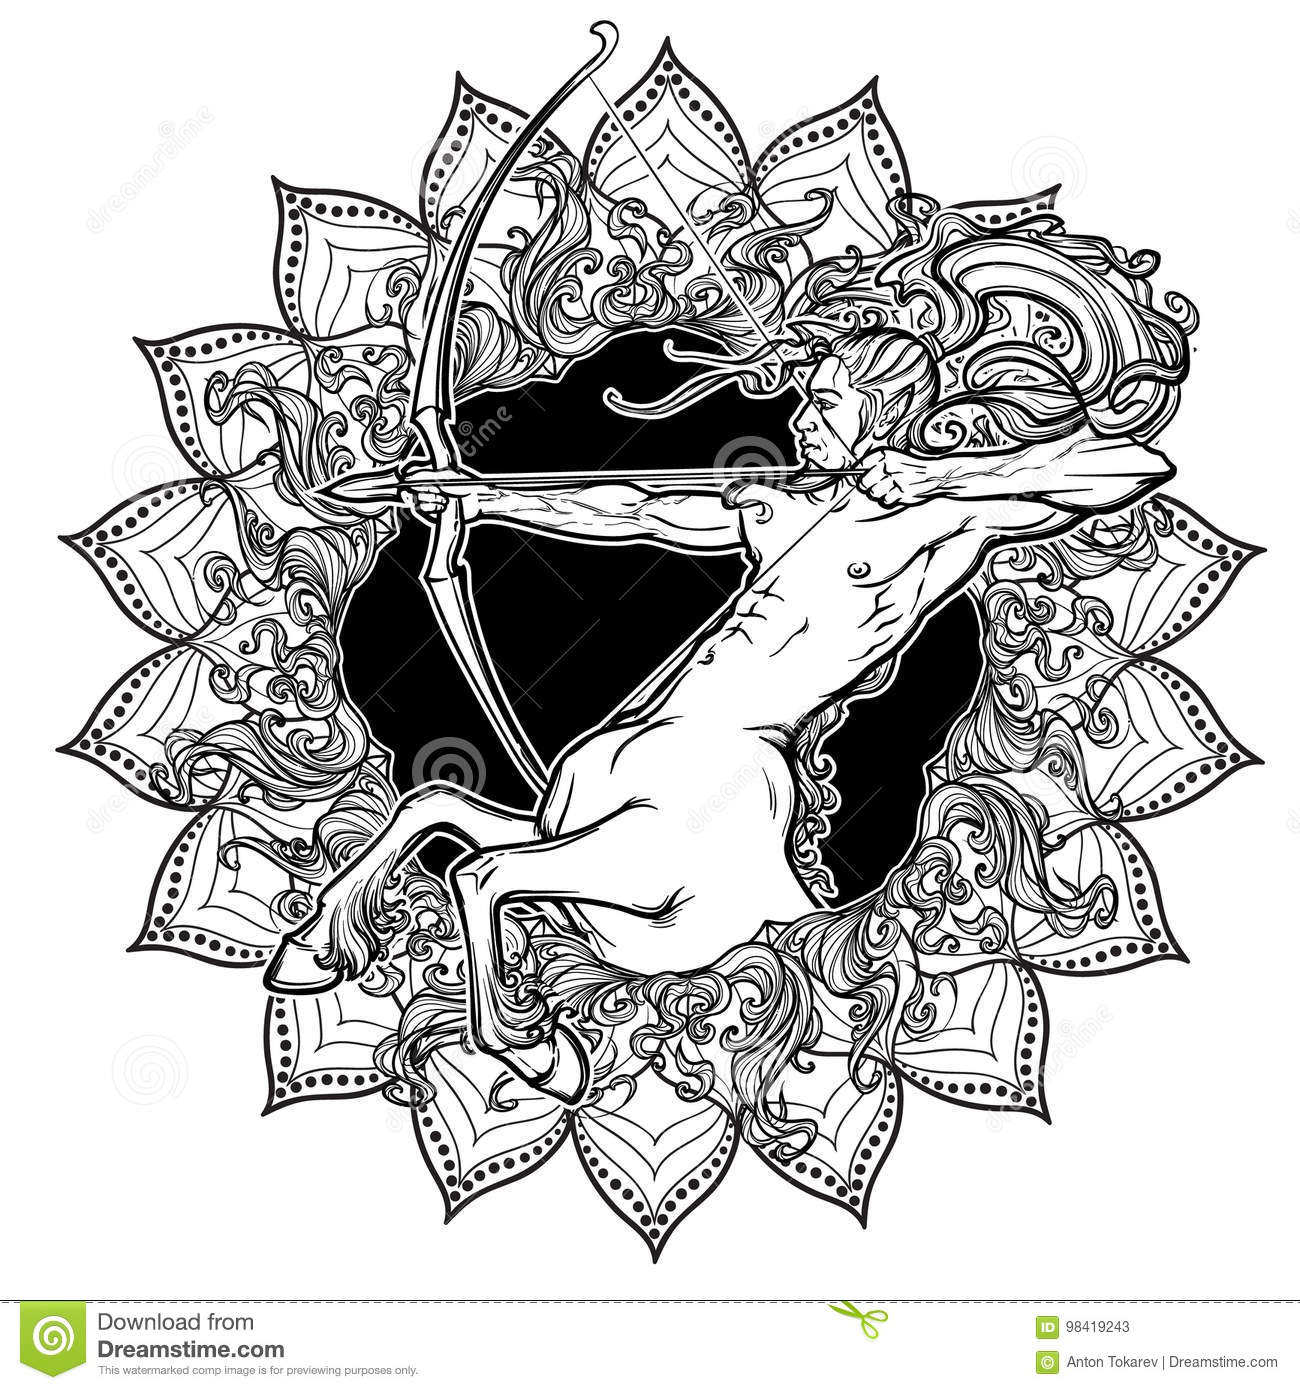 5498412d76554 Sagittarius Zodiac sign with a decorative frame of sun flares and sunflower  petals. Astrology concept art. Tattoo design. Gay Pinup style.